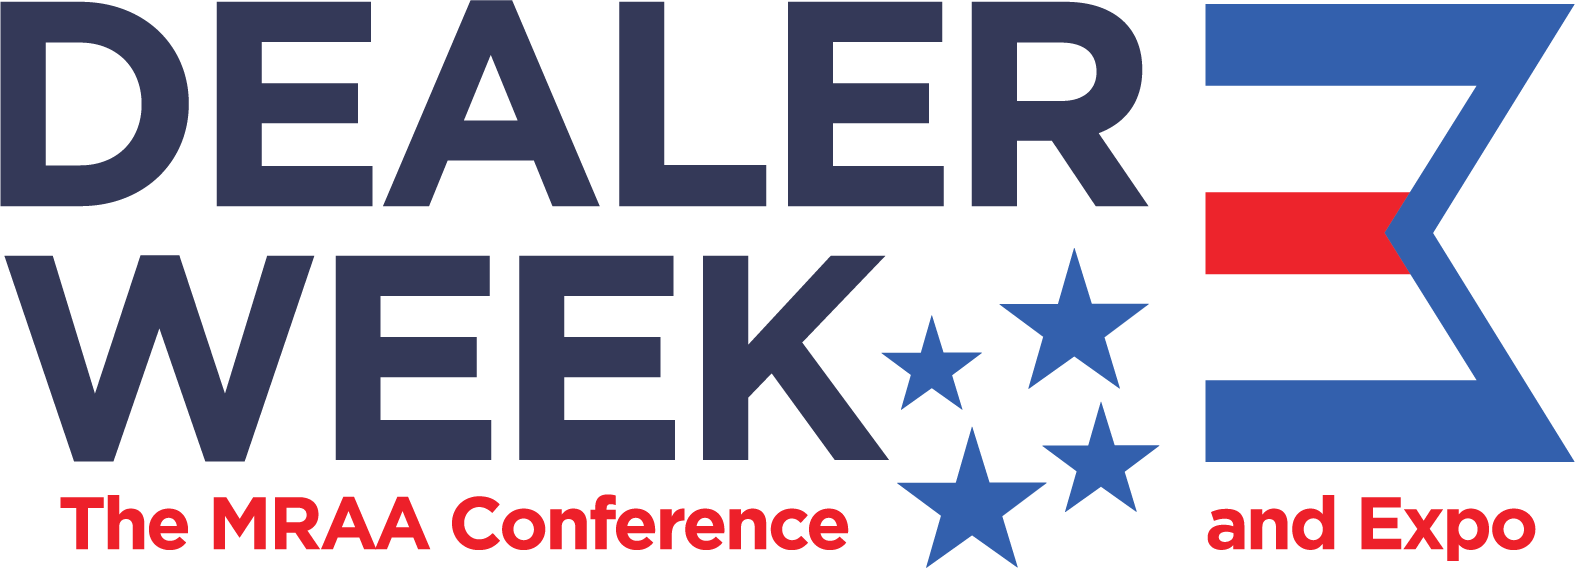 Dealer Week: The MRAA Conference & Expo Logo